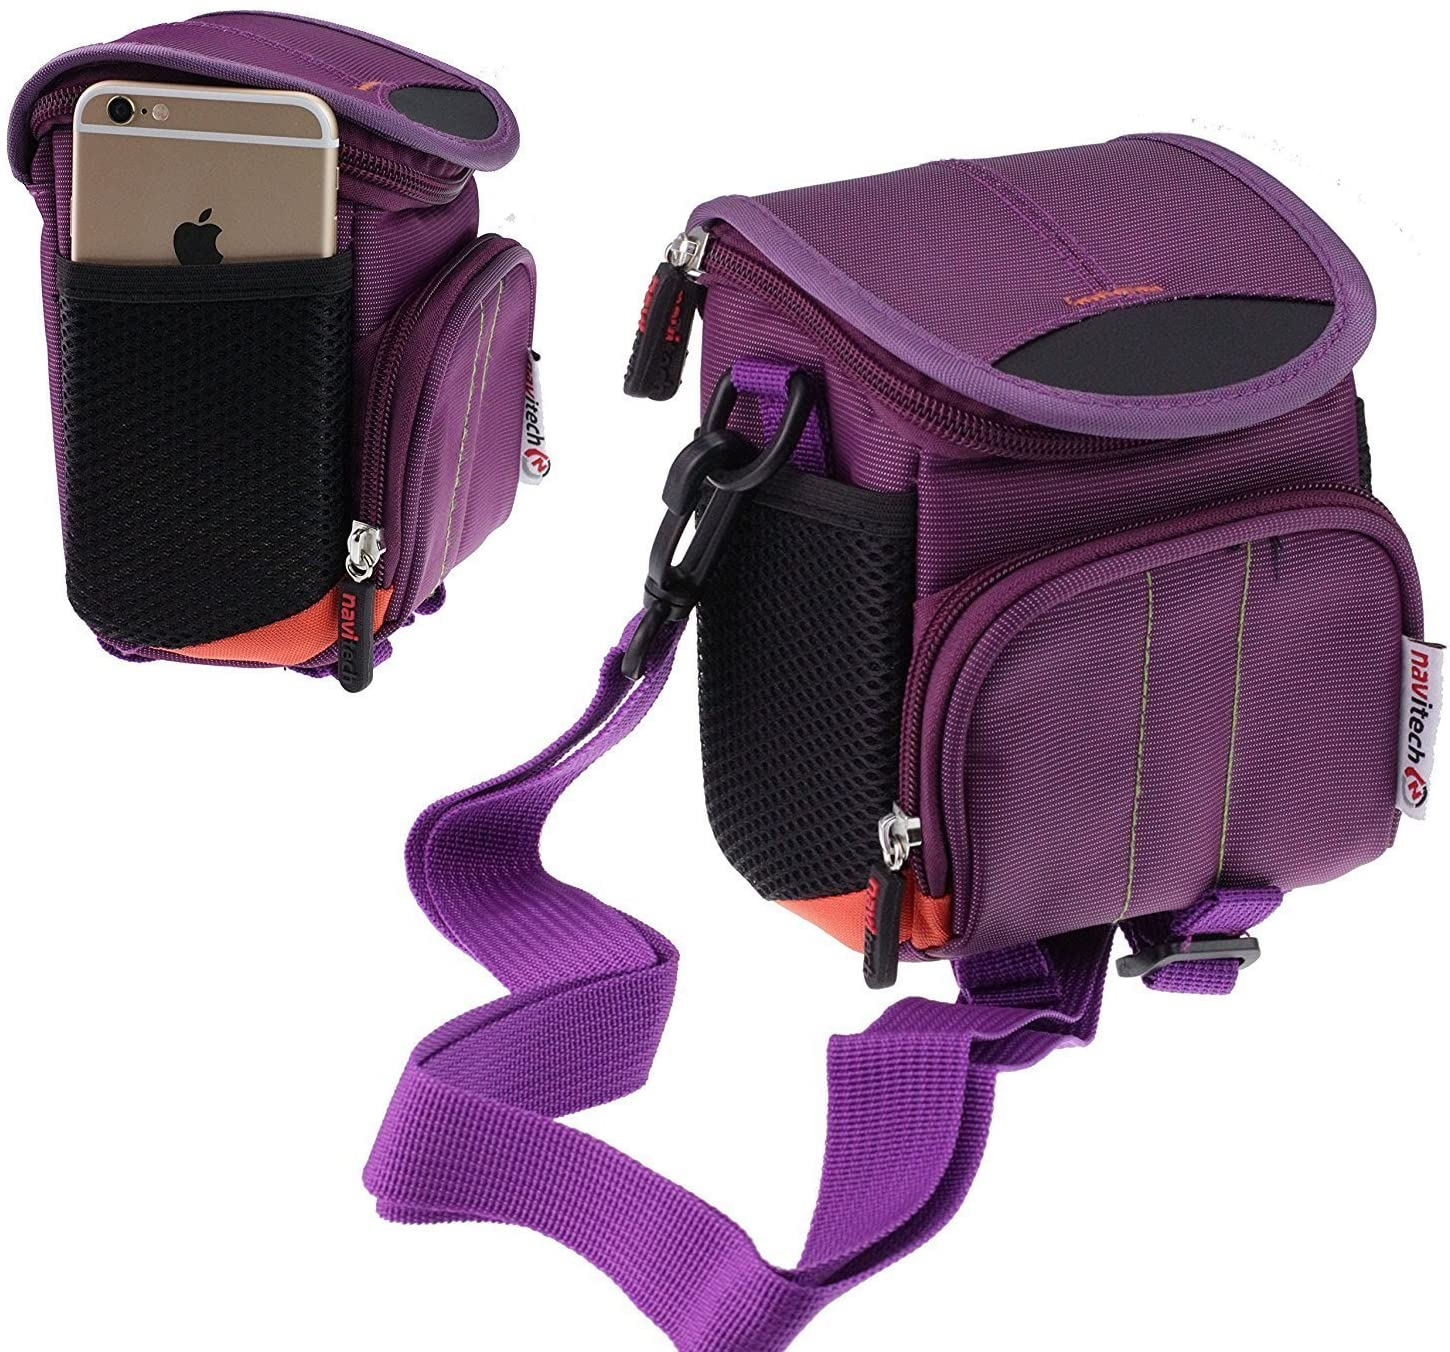 Navitech Purple Digital Camera Case Bag Cover Compatible with The Nikon Coolpix W100 Camera